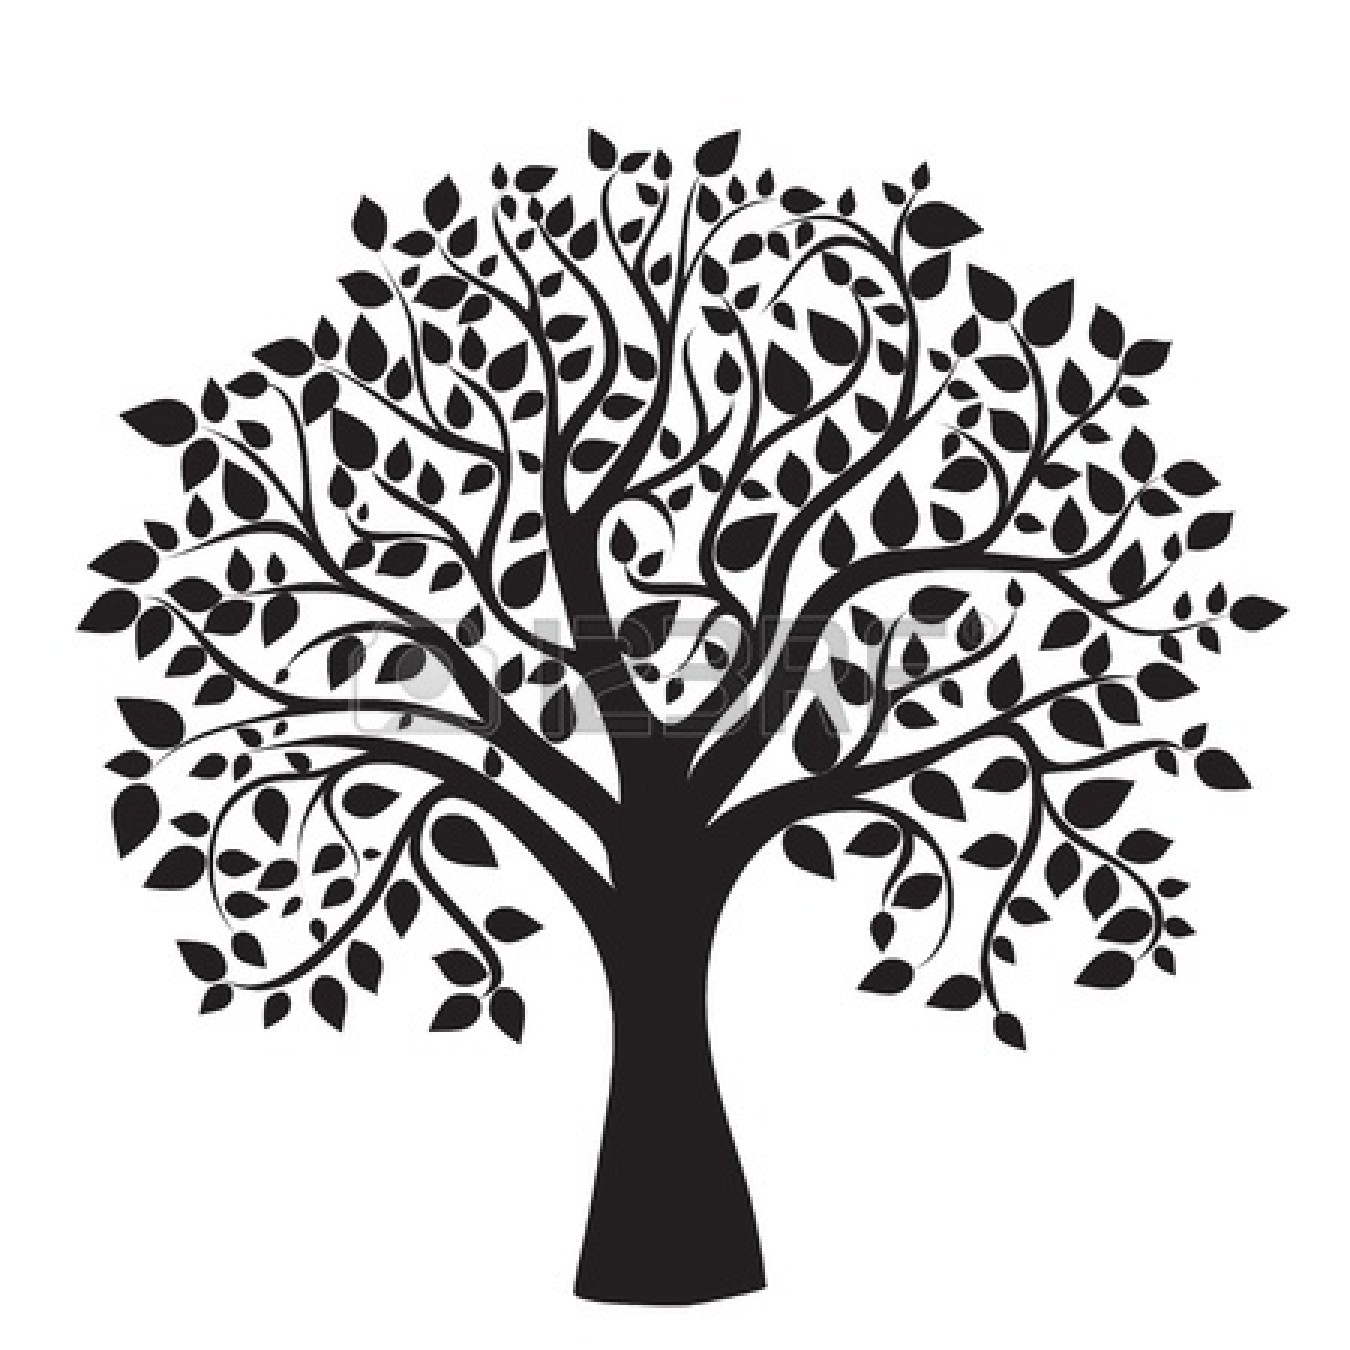 Simple Tree Clip Art At Vector Clip Art Online Image 722